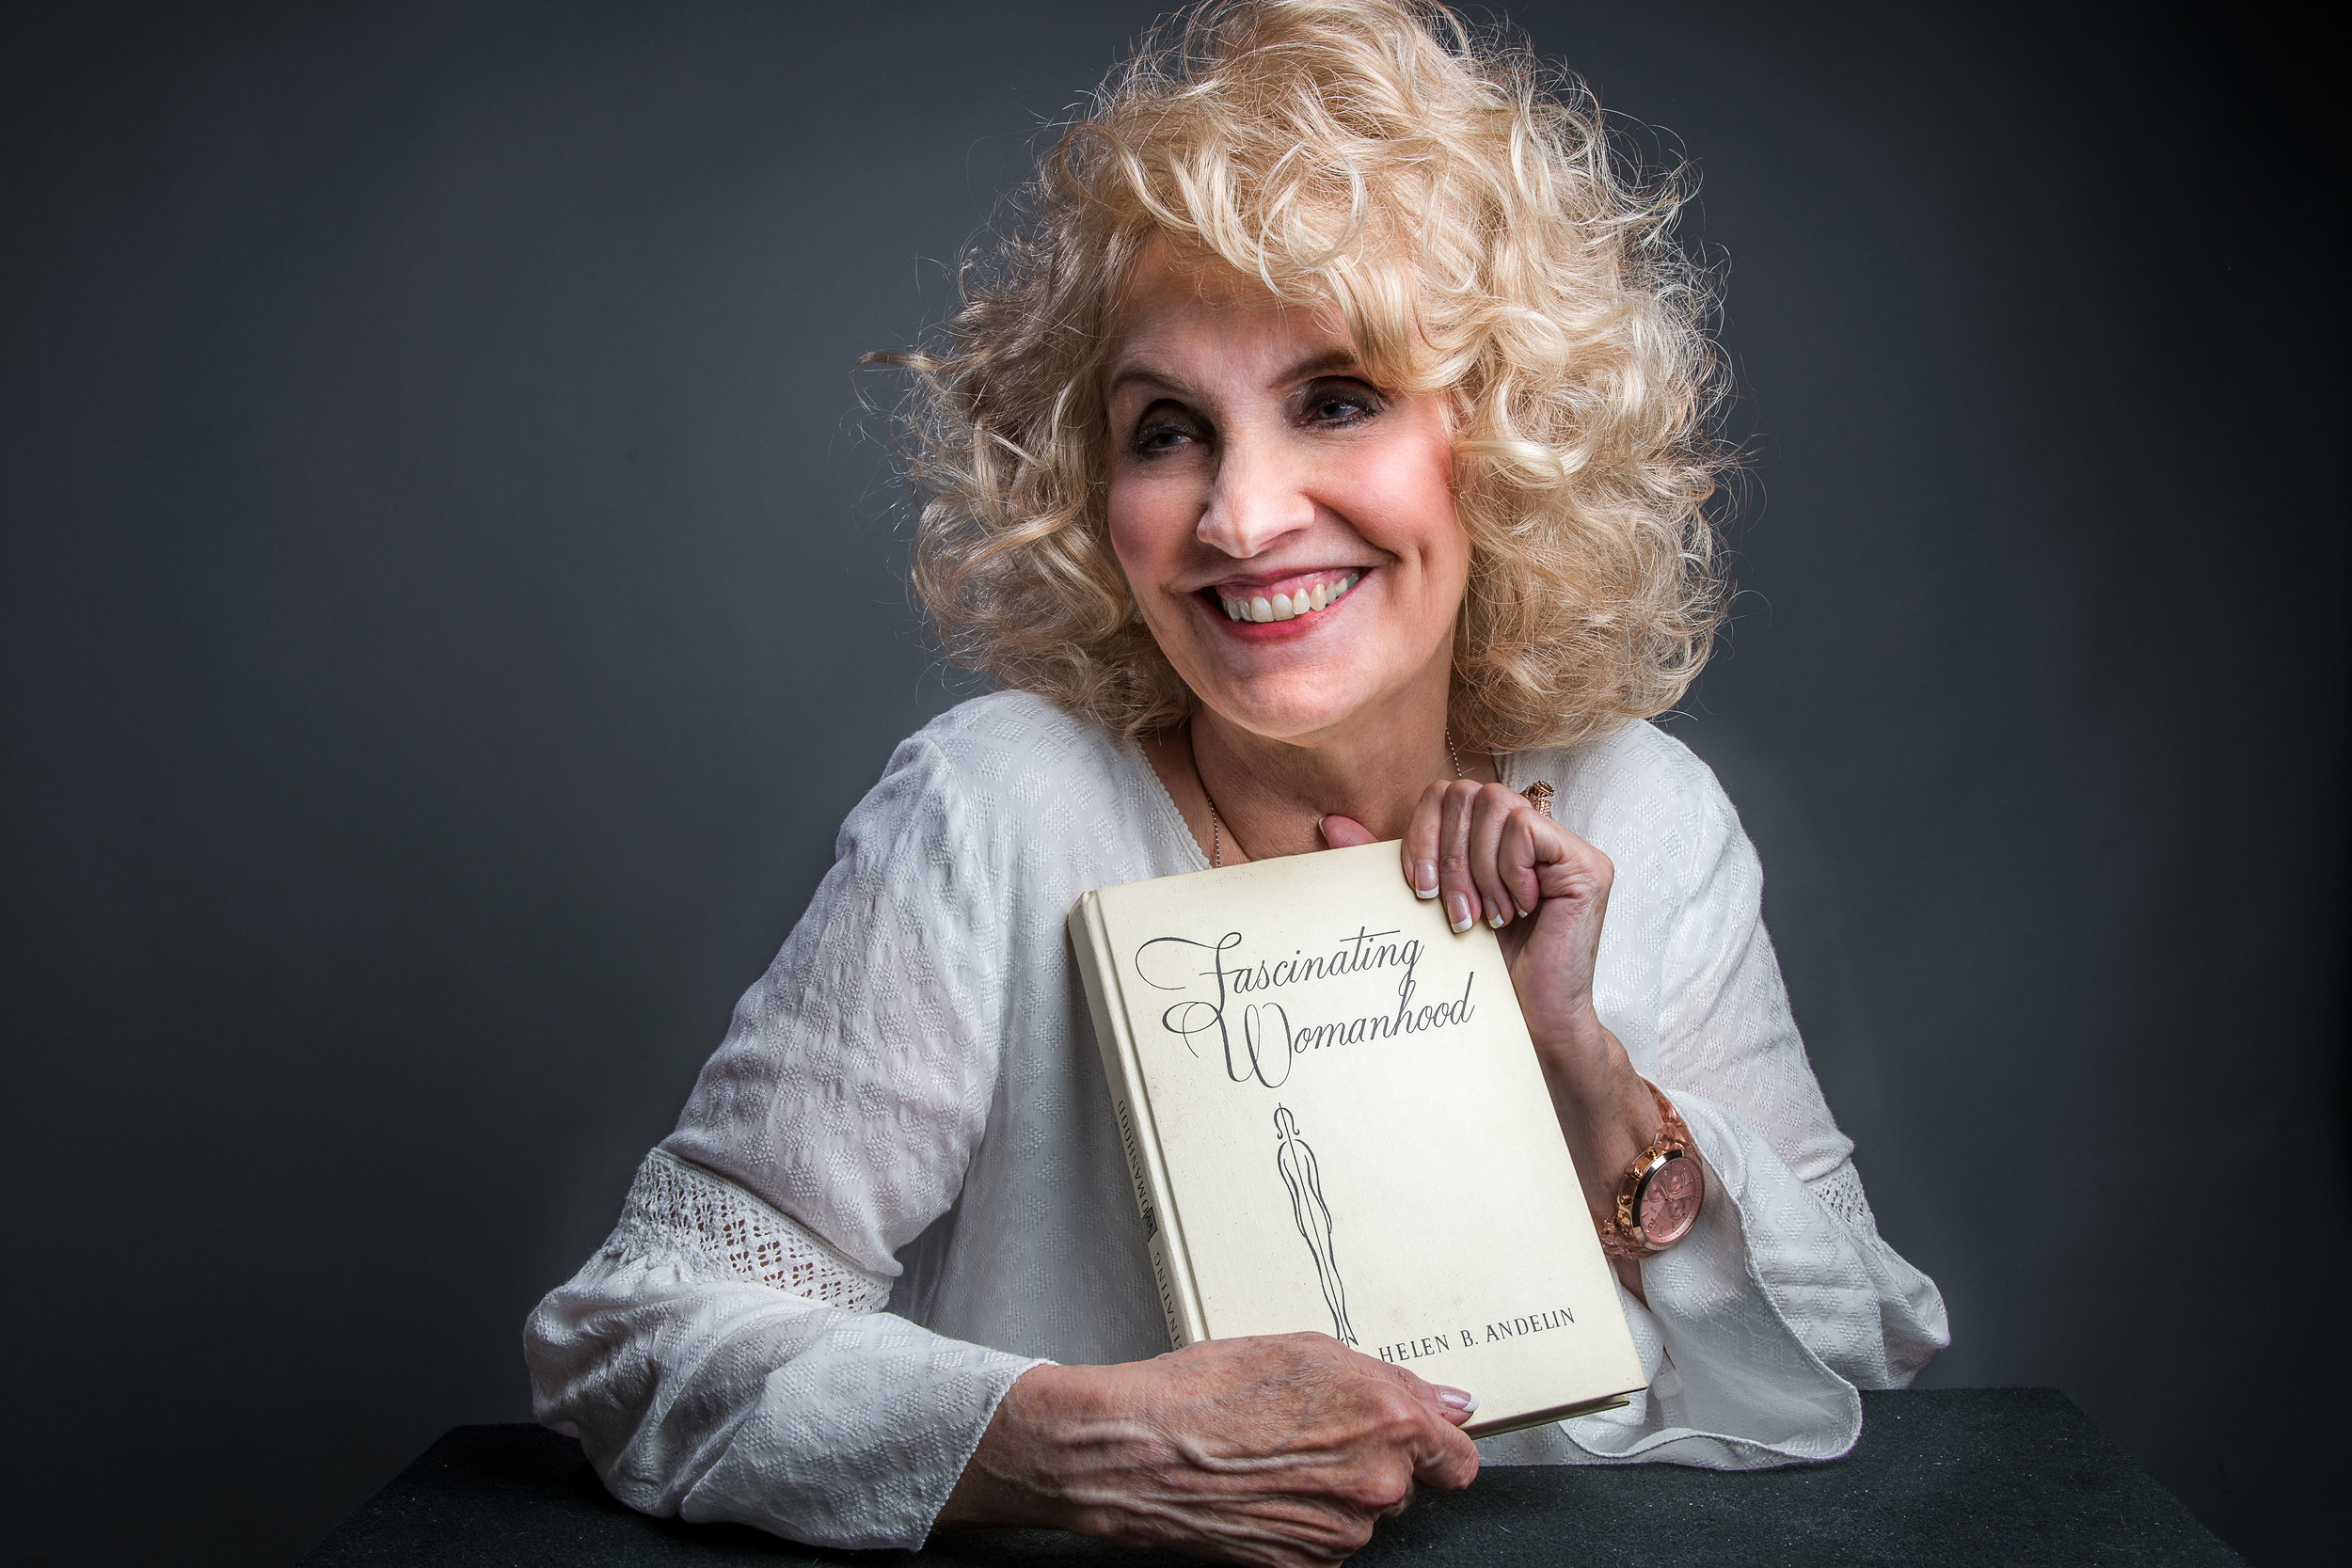 Dixie Andelin Forsyth holding the first copy of the first edition of Fascinating Womanhood, which her mother gave her when they received the first box from the printers in 1963.